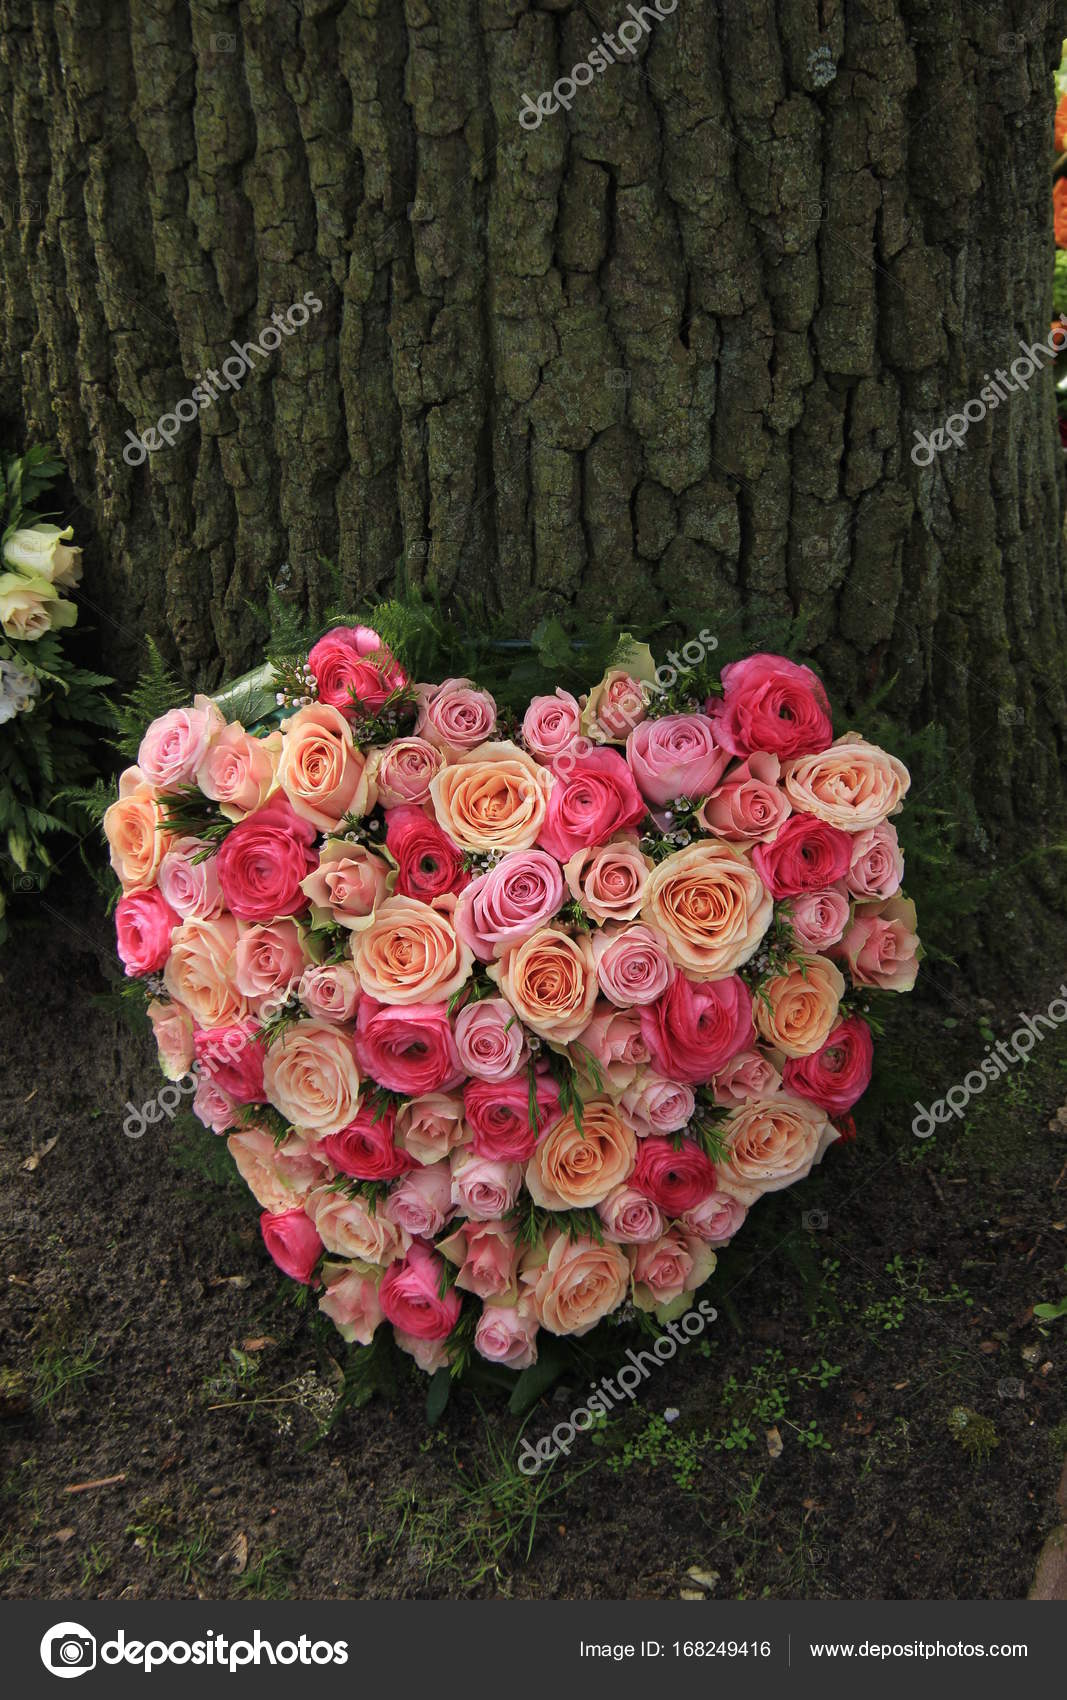 Sympathy Flowers Near A Tree Stock Photo Portosabbia 168249416